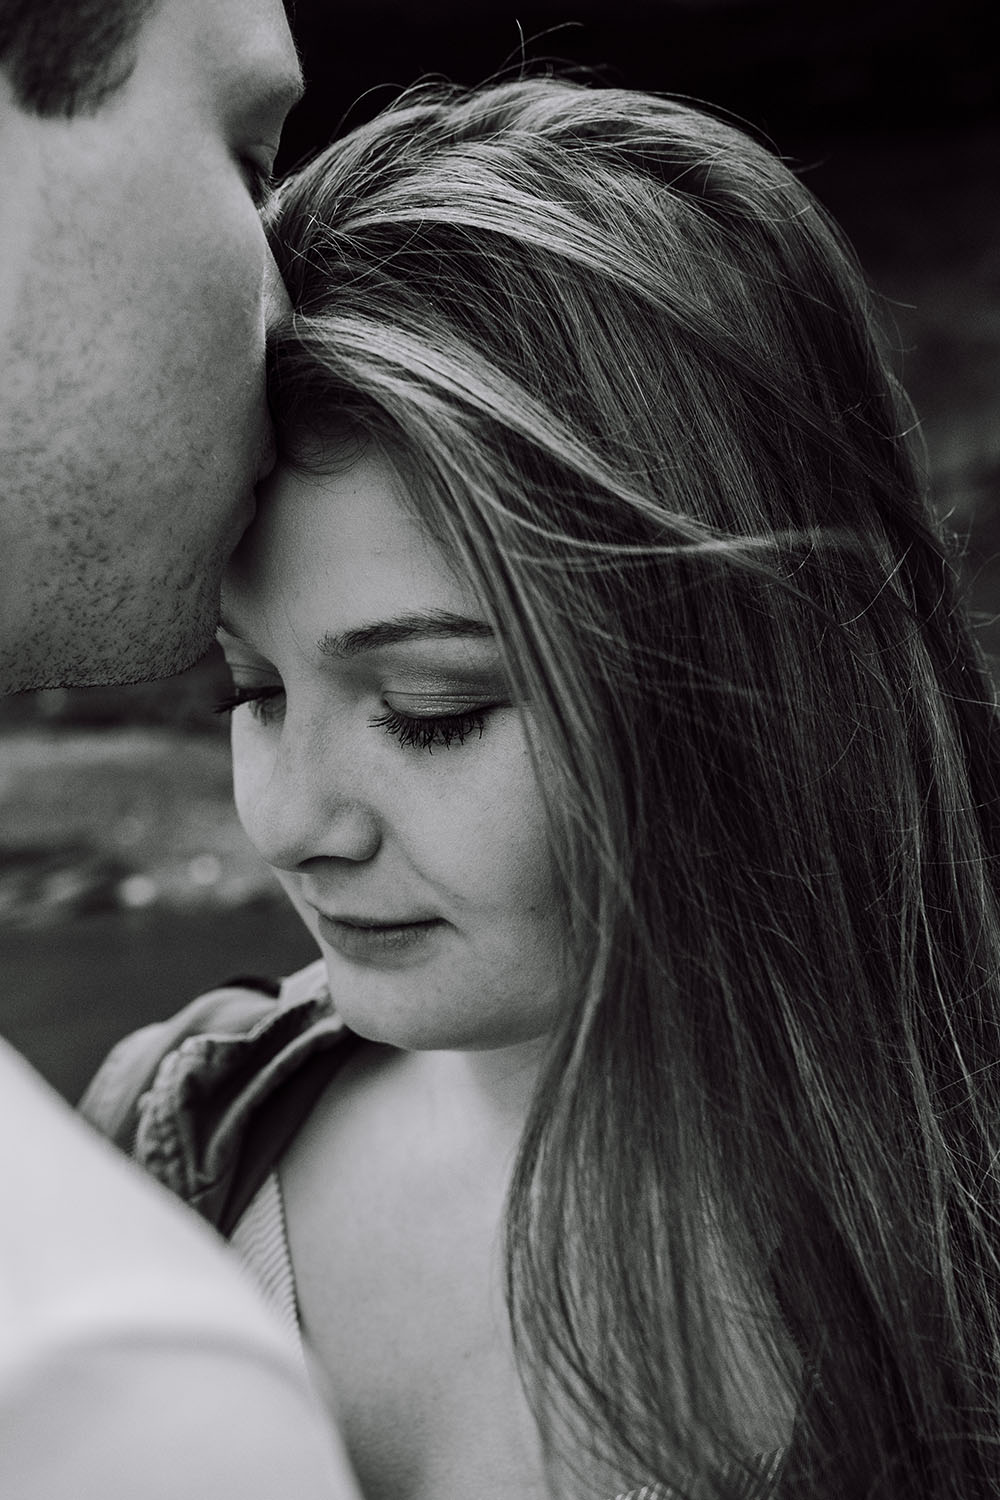 Shutter Up Studios | Engagement photographer in Williamsport Indiana | Ethereal black and white couples session at Williamsport Falls waterfall